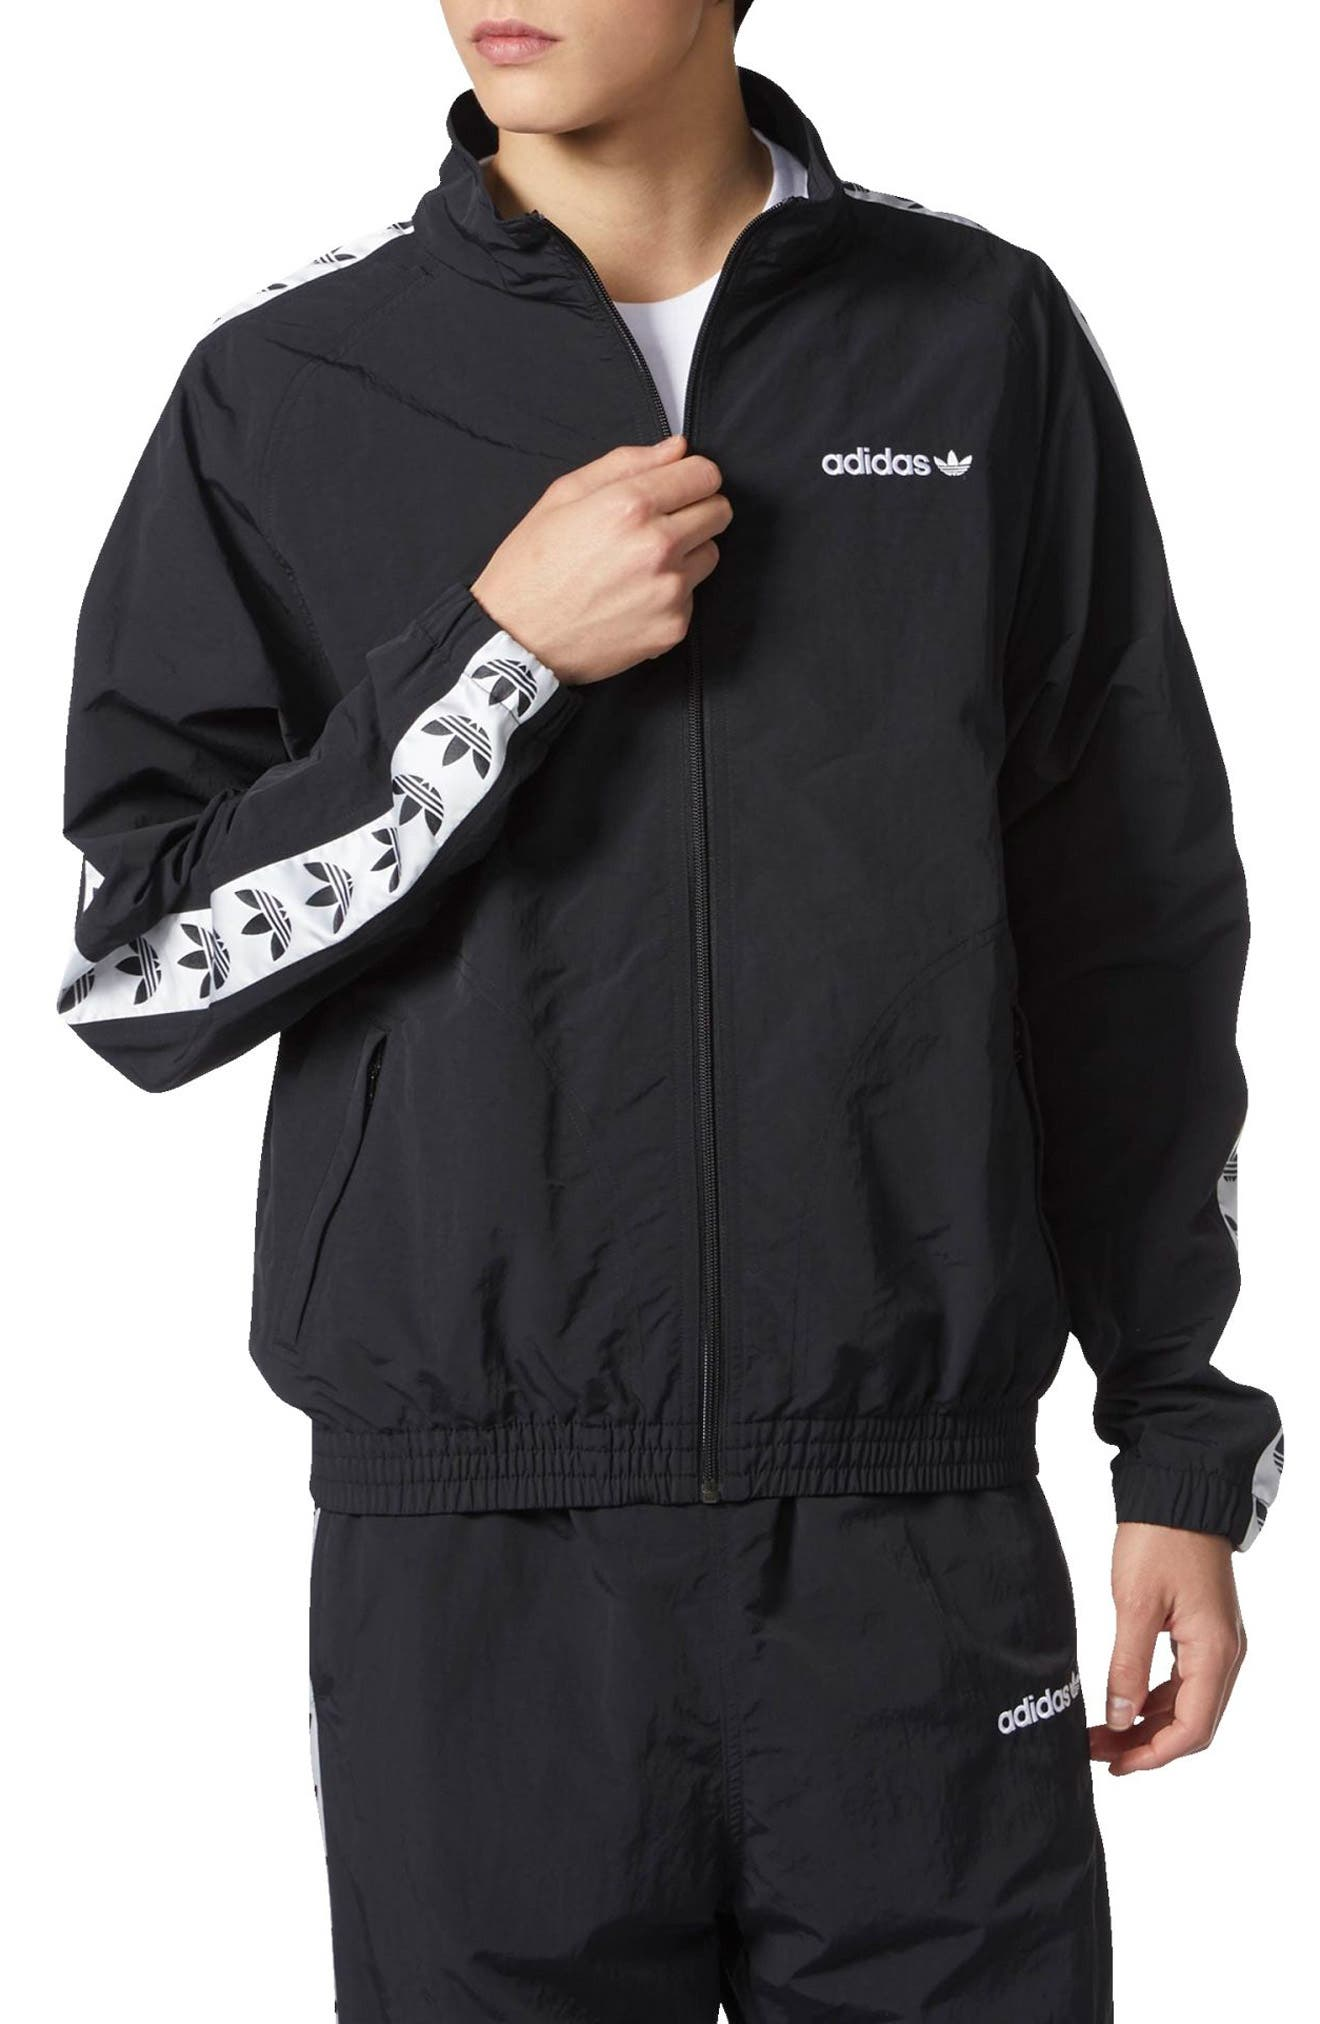 adidas Originals TNT Tape Wind Jacket